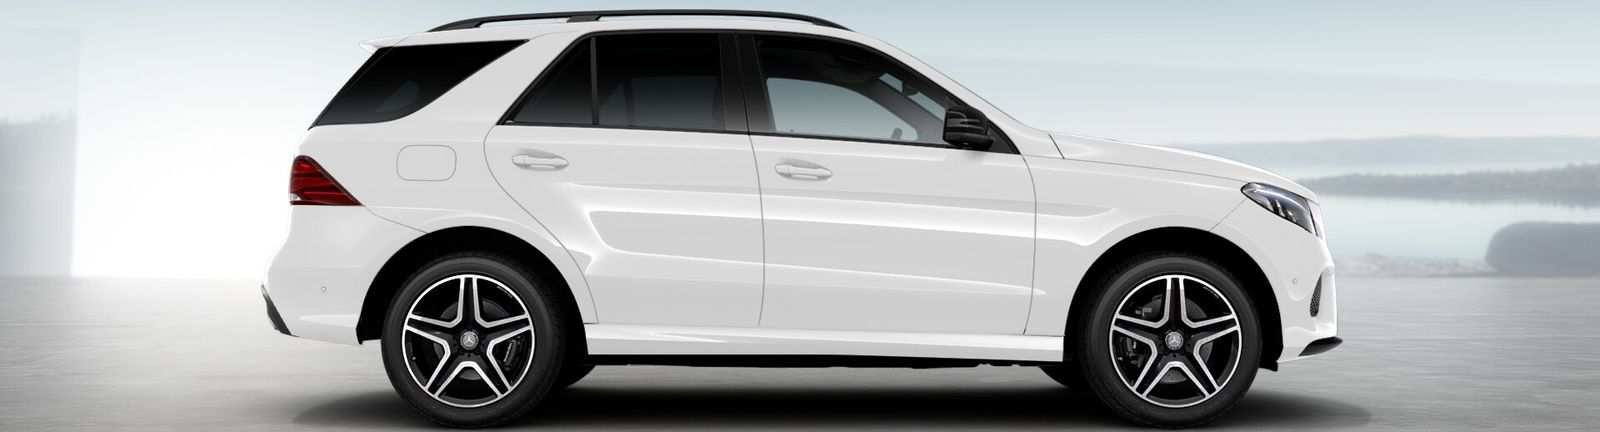 Mercedes gle suv colours guide and prices carwow for Mercedes benz polar white paint